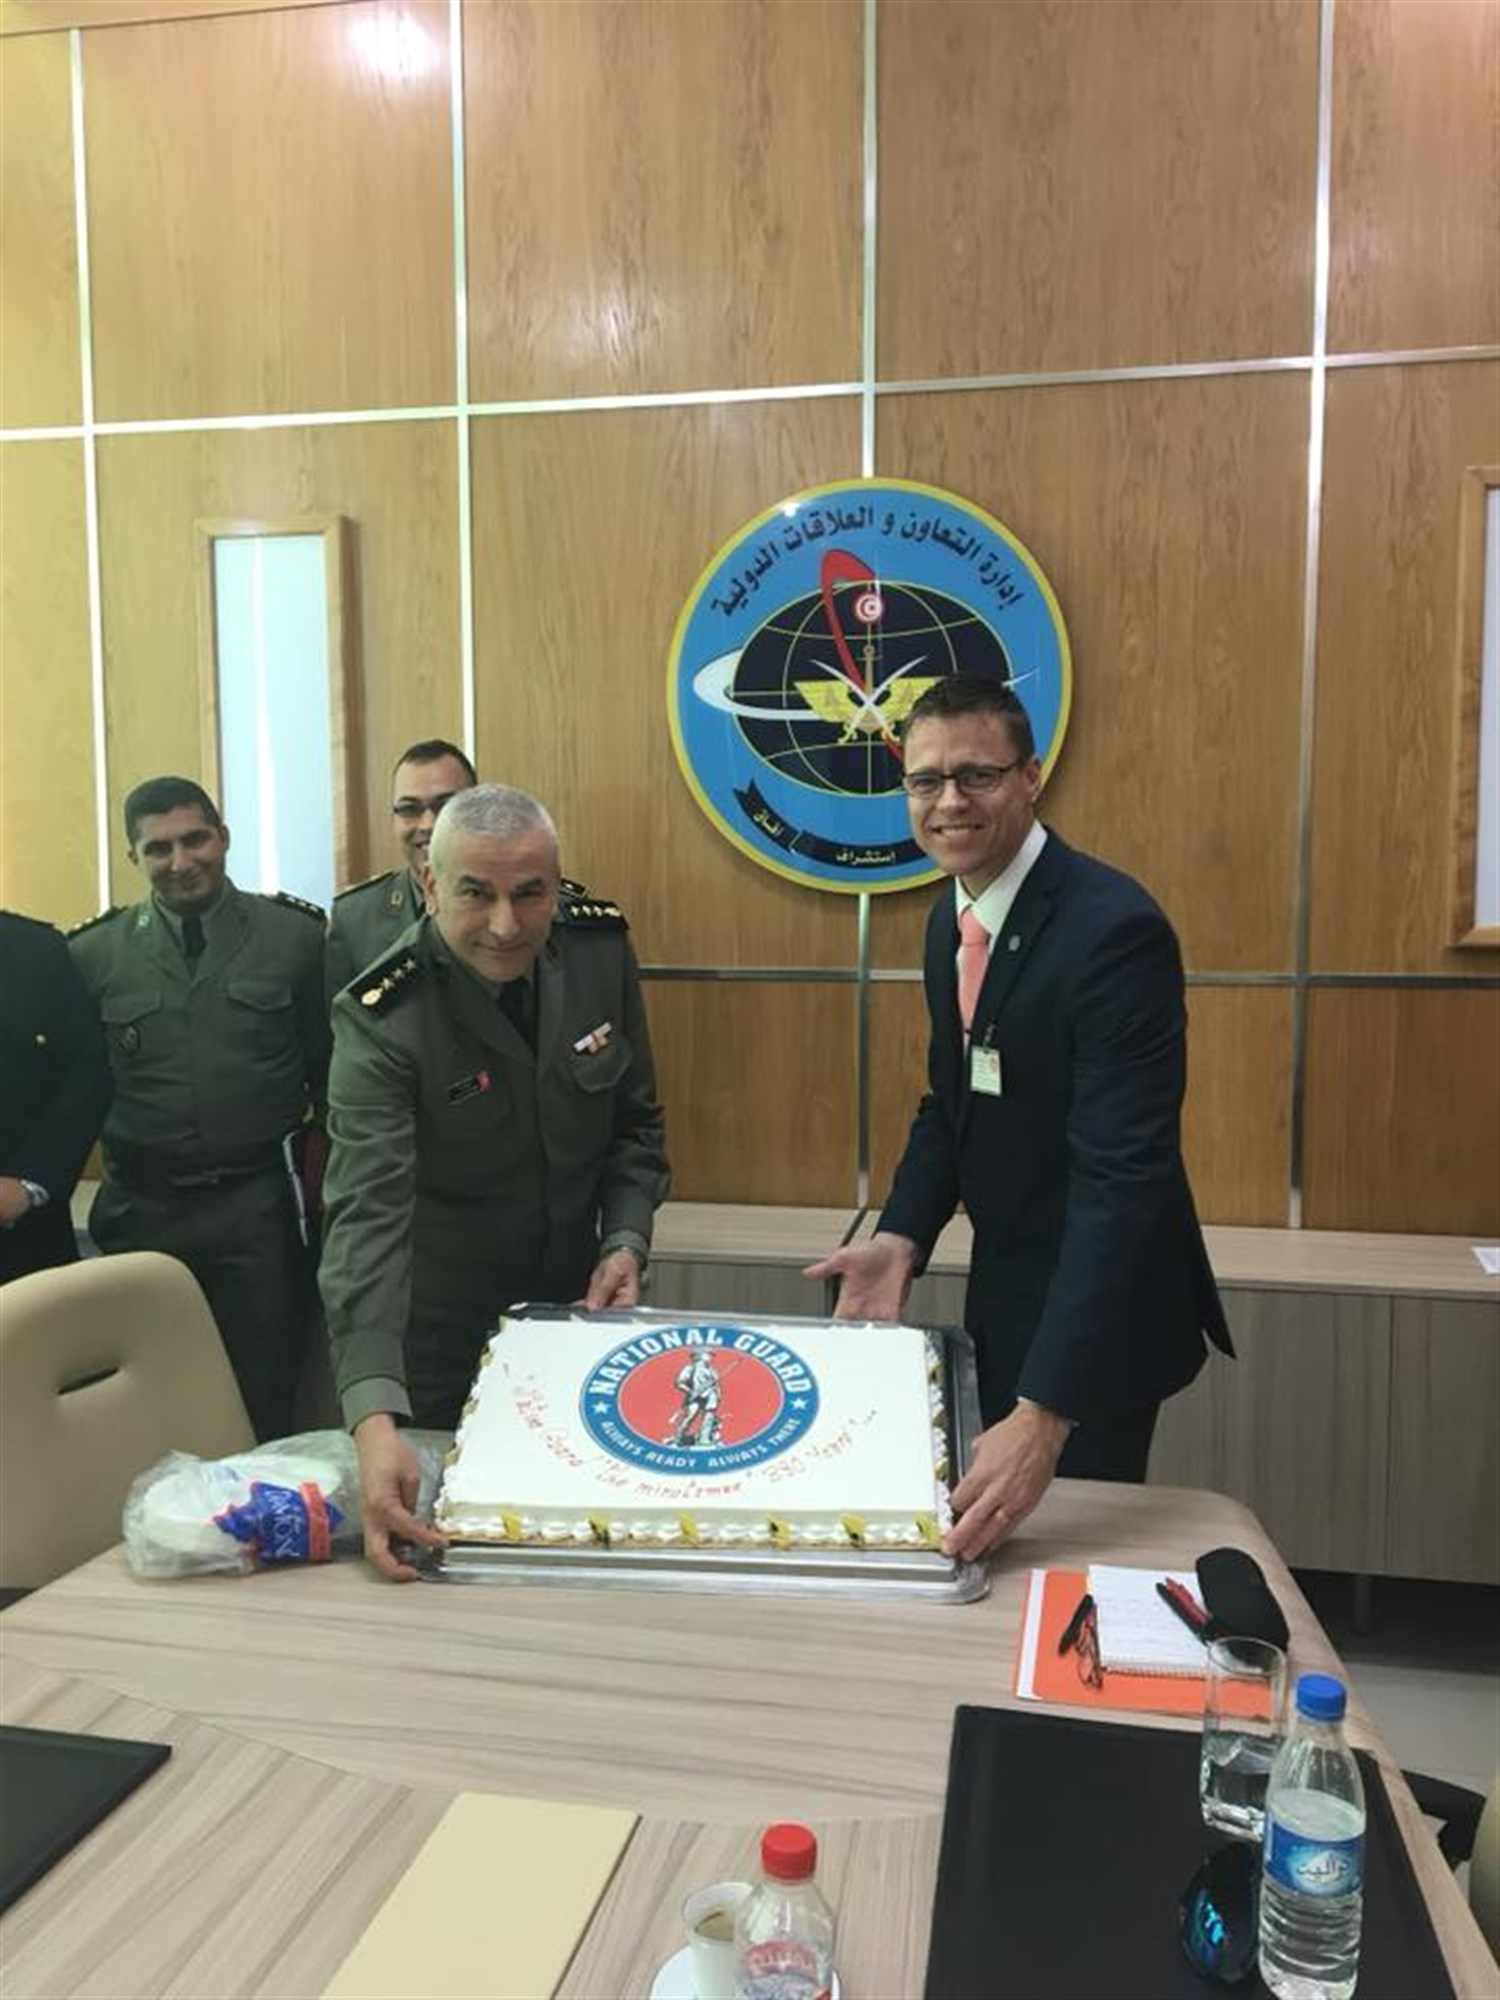 Capt. Neal, Wyoming National Guard and Tunisia Bilateral Affairs Officer and Colonel Skhiri of the Tunisian Armed Forces cut cake to celebrate the National Guard Birthday.